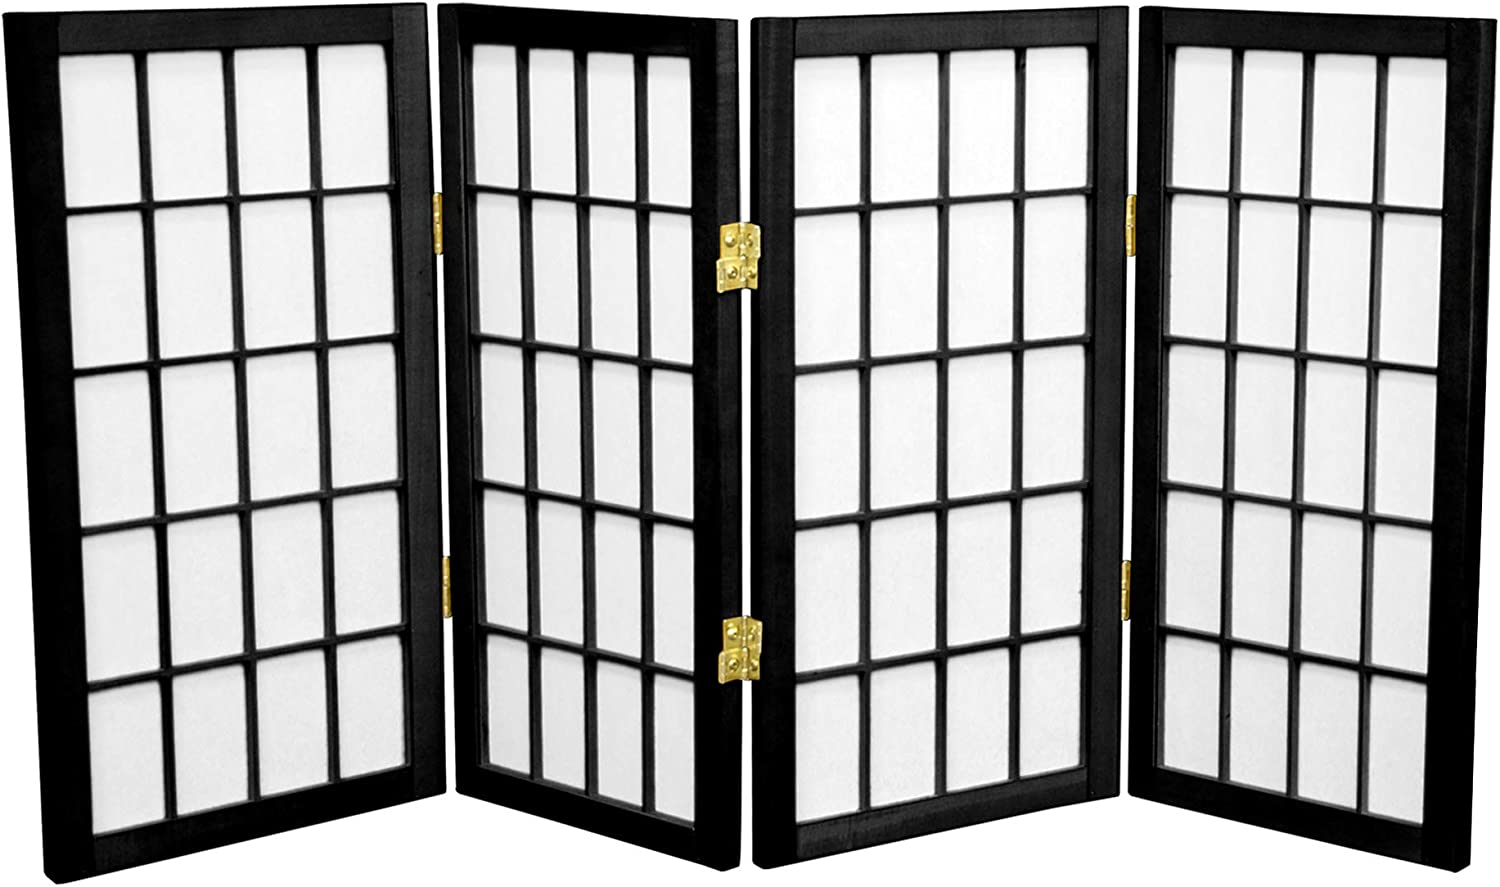 Oriental Furniture 2 ft. Tall Desktop Window Pane Shoji Screen - Black - 4 Panels